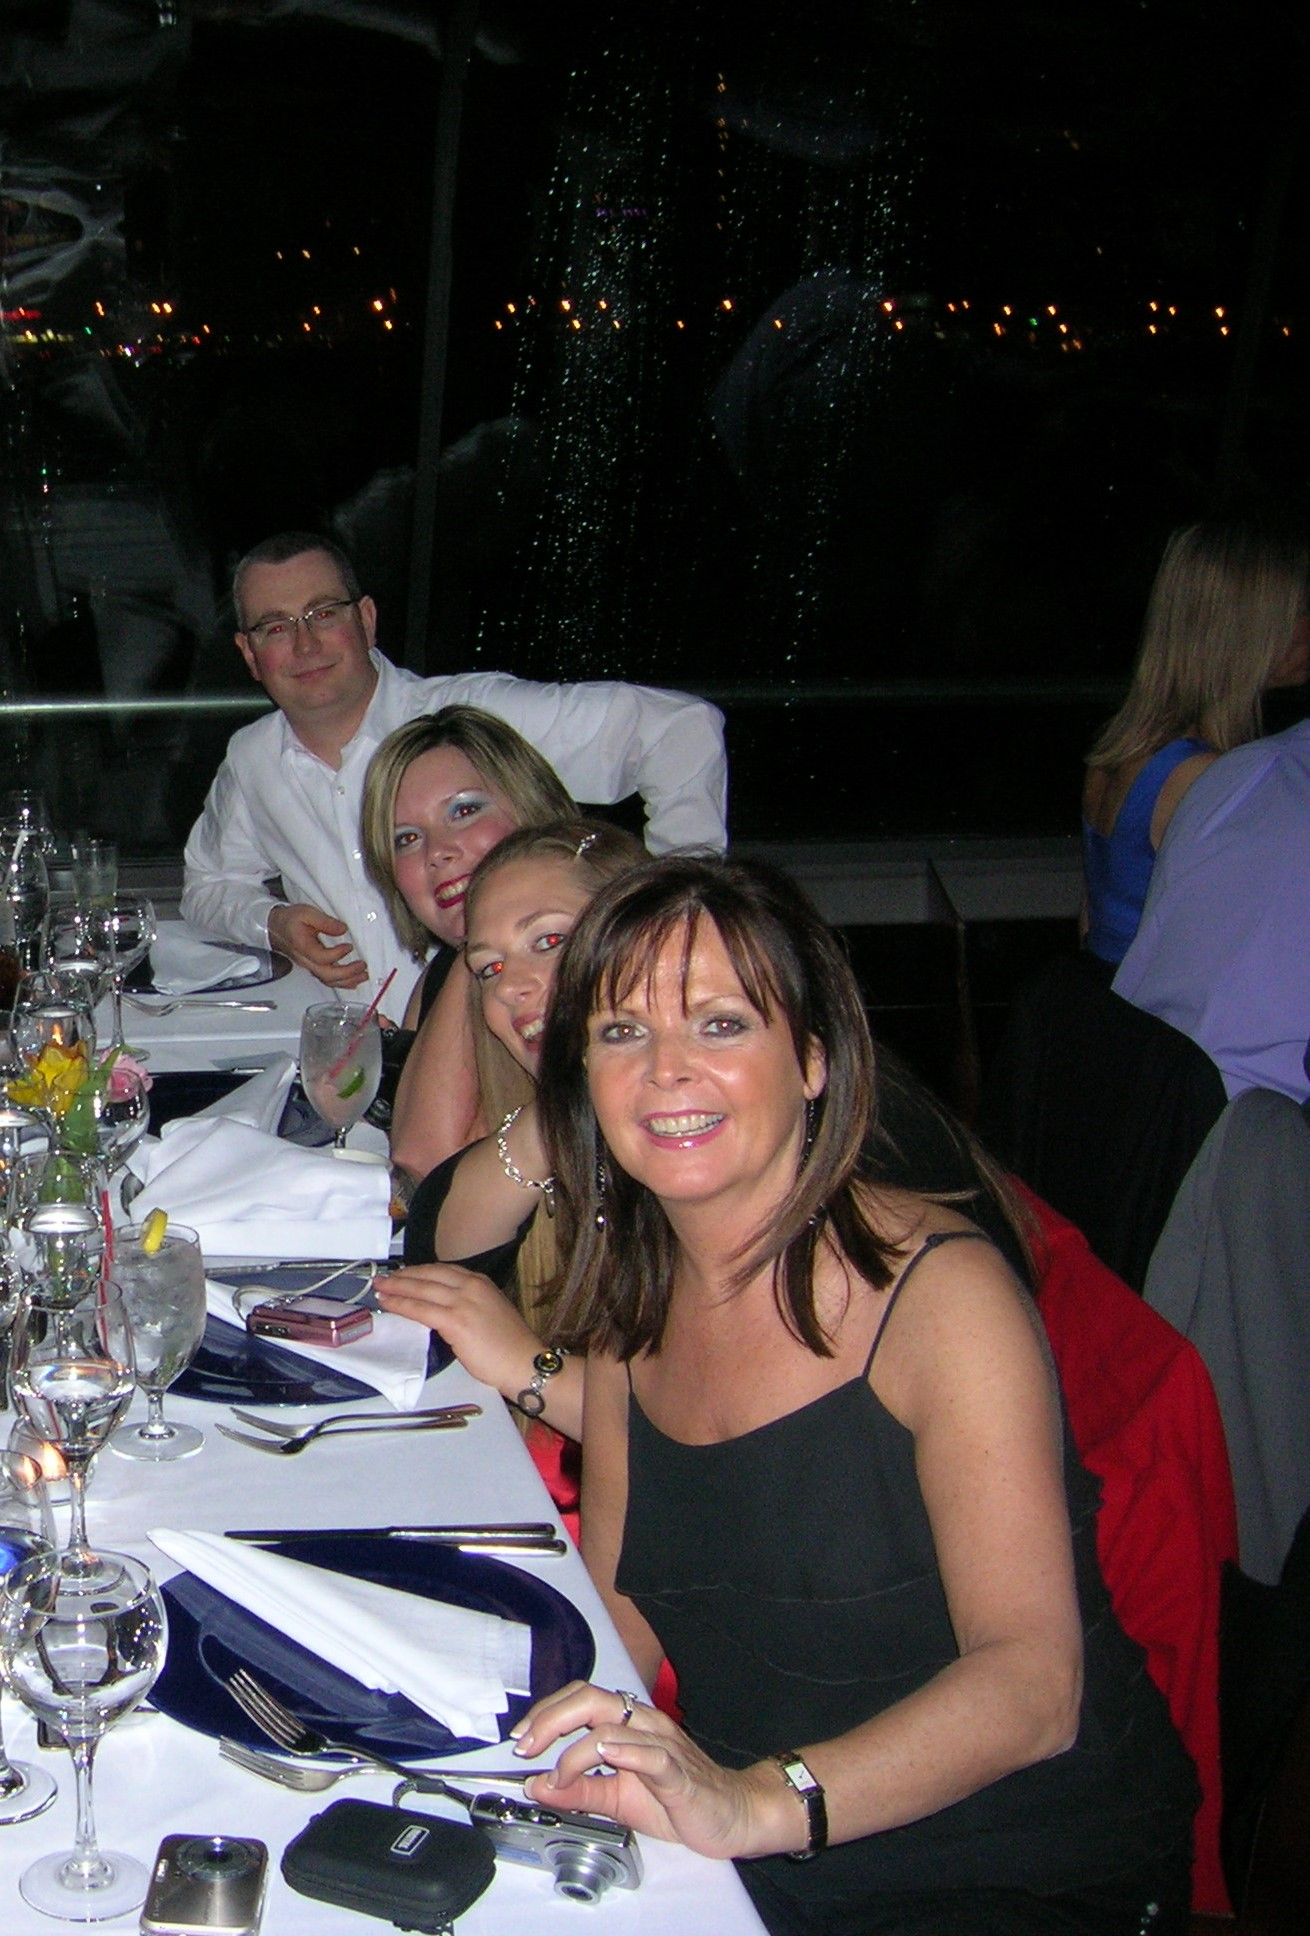 Simon Baddeley in New York with colleagues